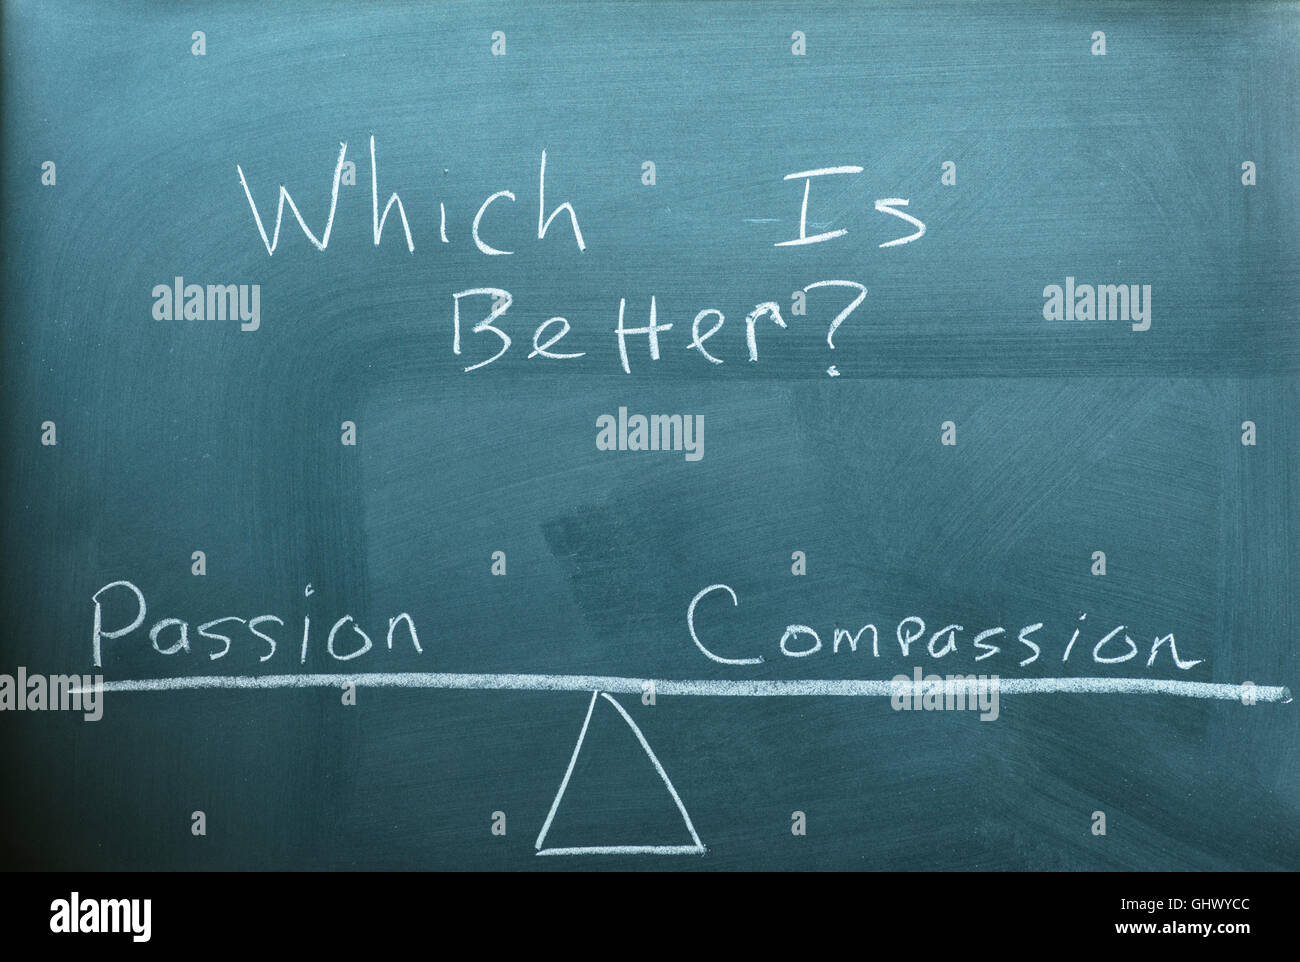 the words passion and compassion on a scale in equilibrium written on a chalkboard. - Stock Image